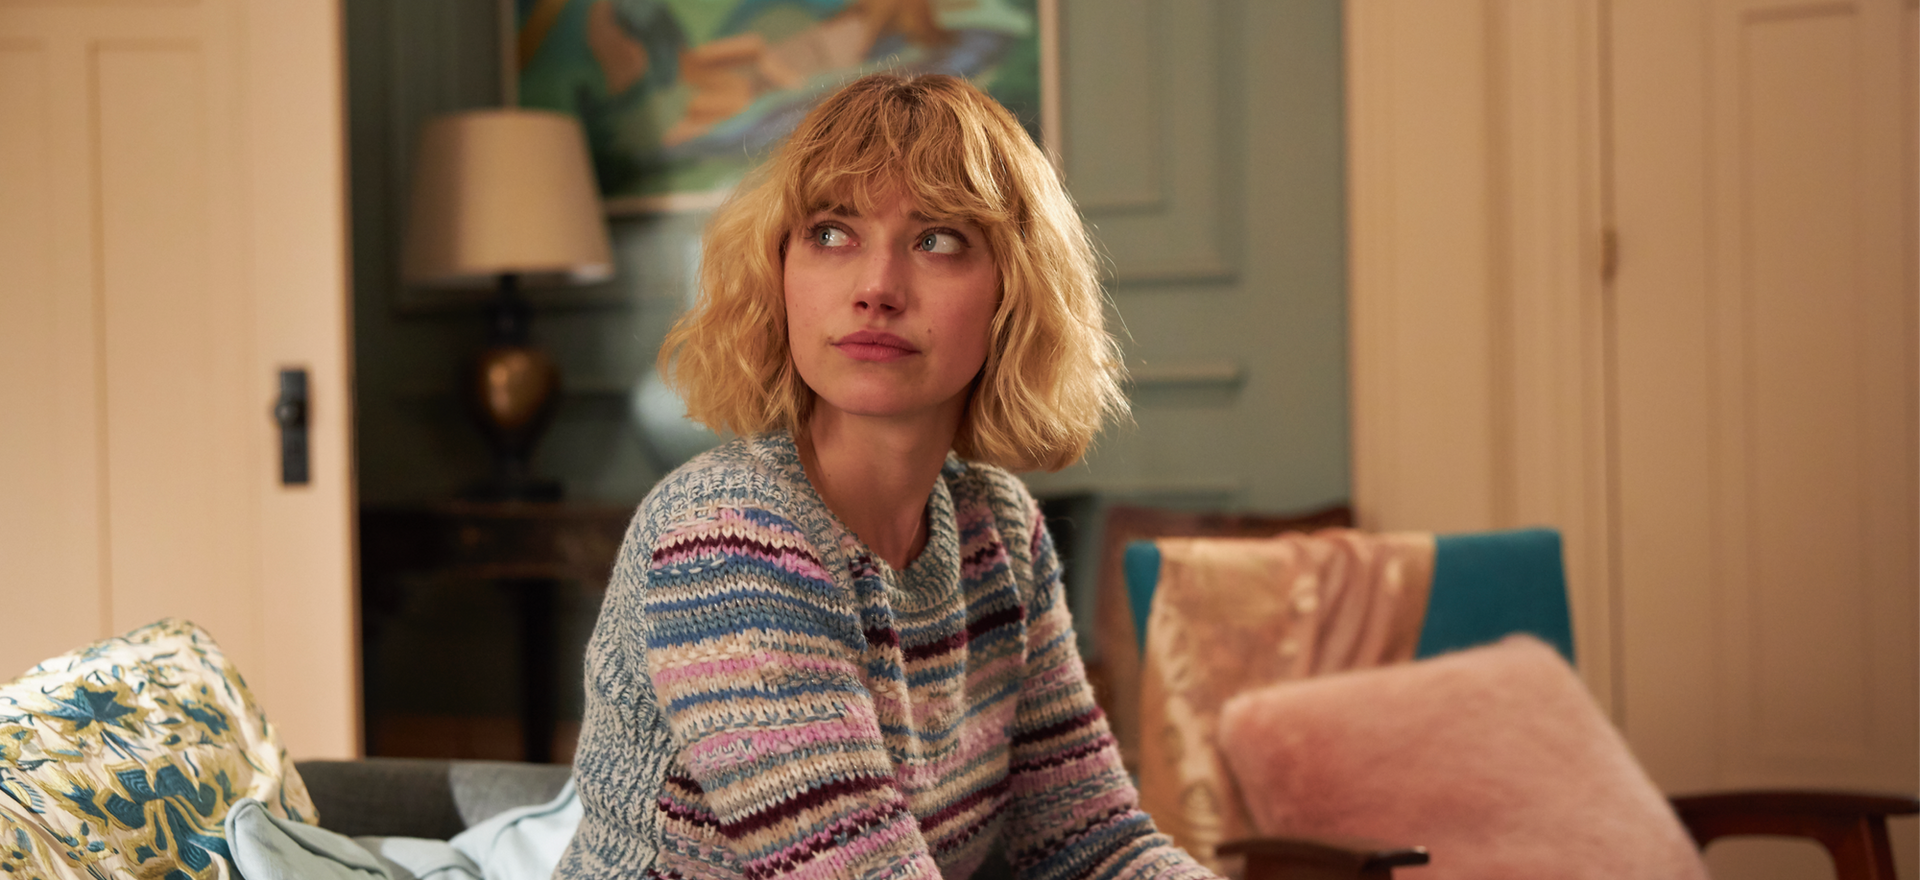 imogen poots plays laura . The Father . Directed by Florian Zeller . Staring Anthony Hopkins, Olivia Colman, Imogen Poots, Rufus Sewell, Olivia Williams, Mark Gattis